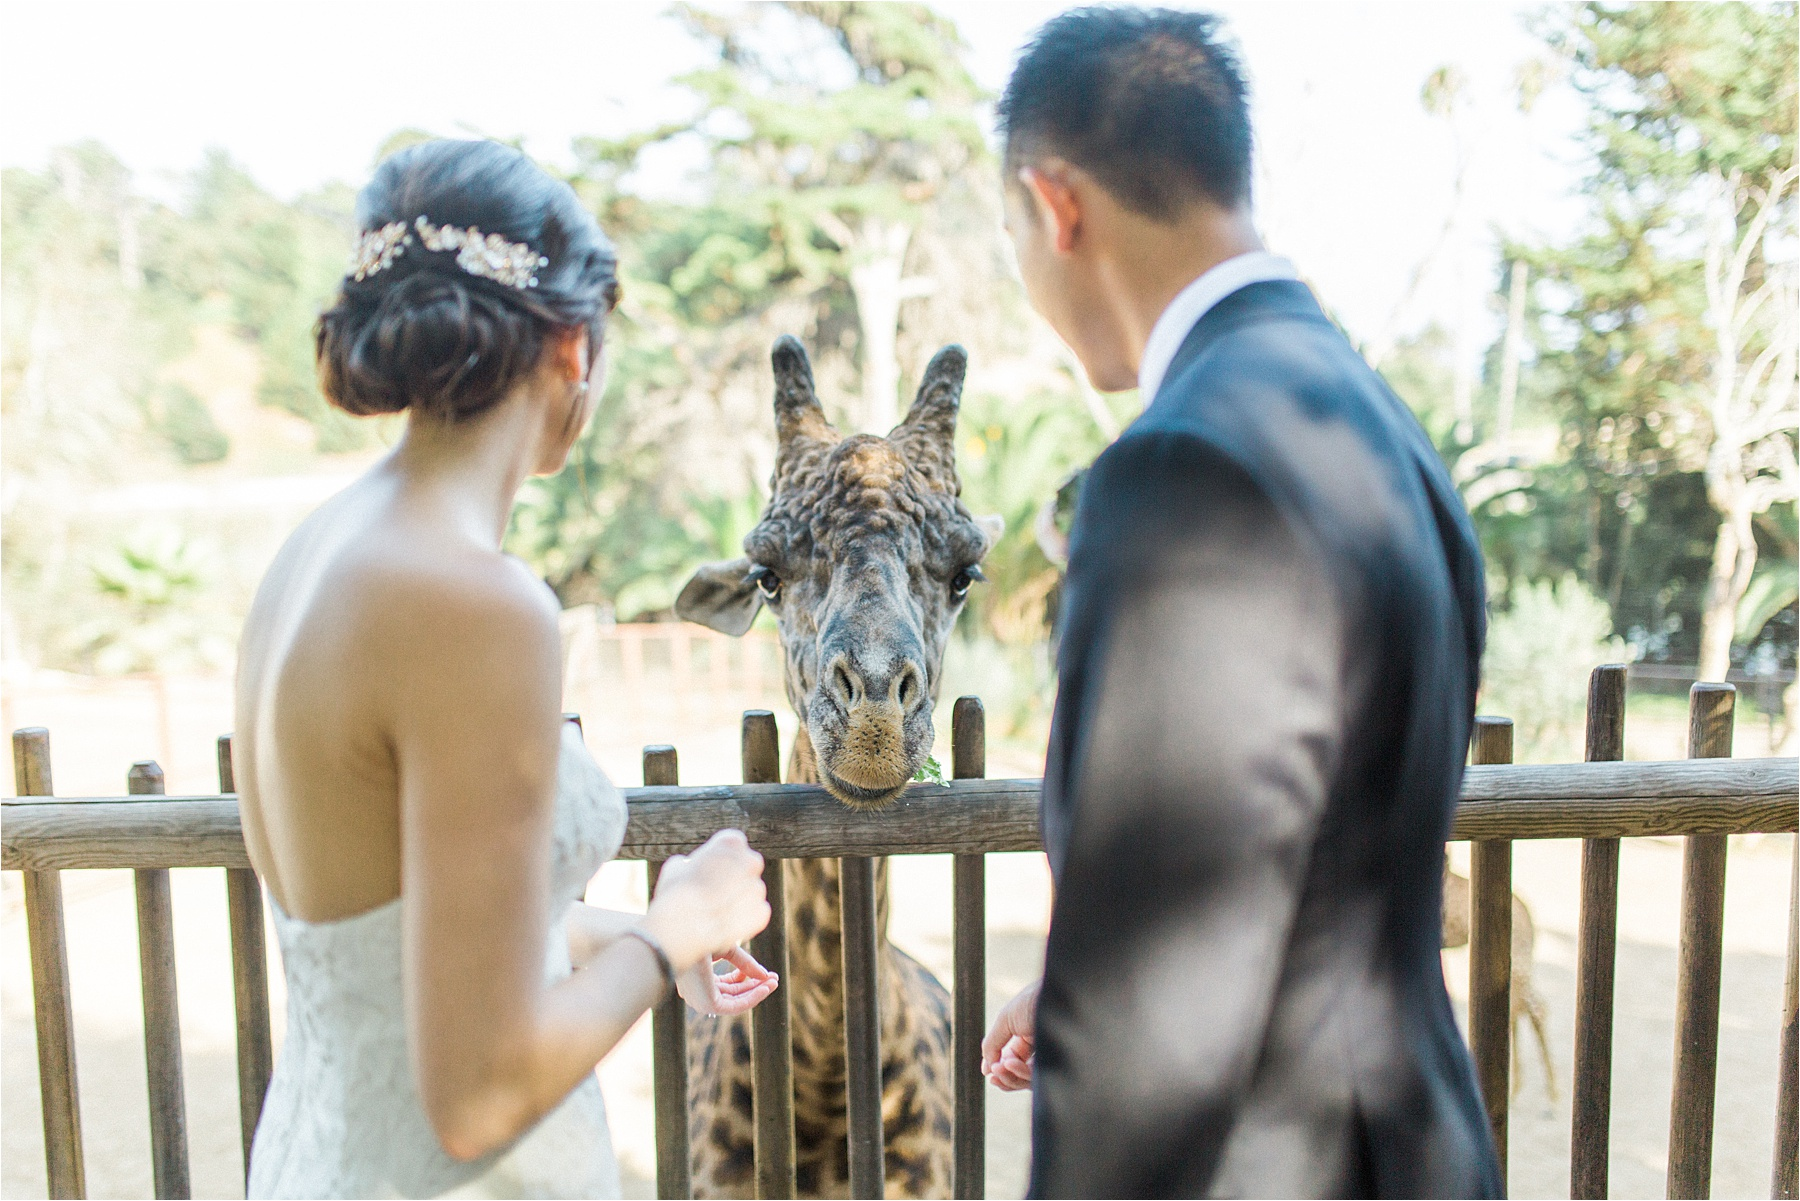 Santa Barbara Zoo Wedding, Santa Barbara Wedding Photographer, Sarah Ellefson Photography, Santa Barbara Wedding Photos, Santa Barbara Zoo Wedding Photos, Santa Barbara Engagement Photographer, Santa Barbara Wedding, Santa Barbara California Wedding